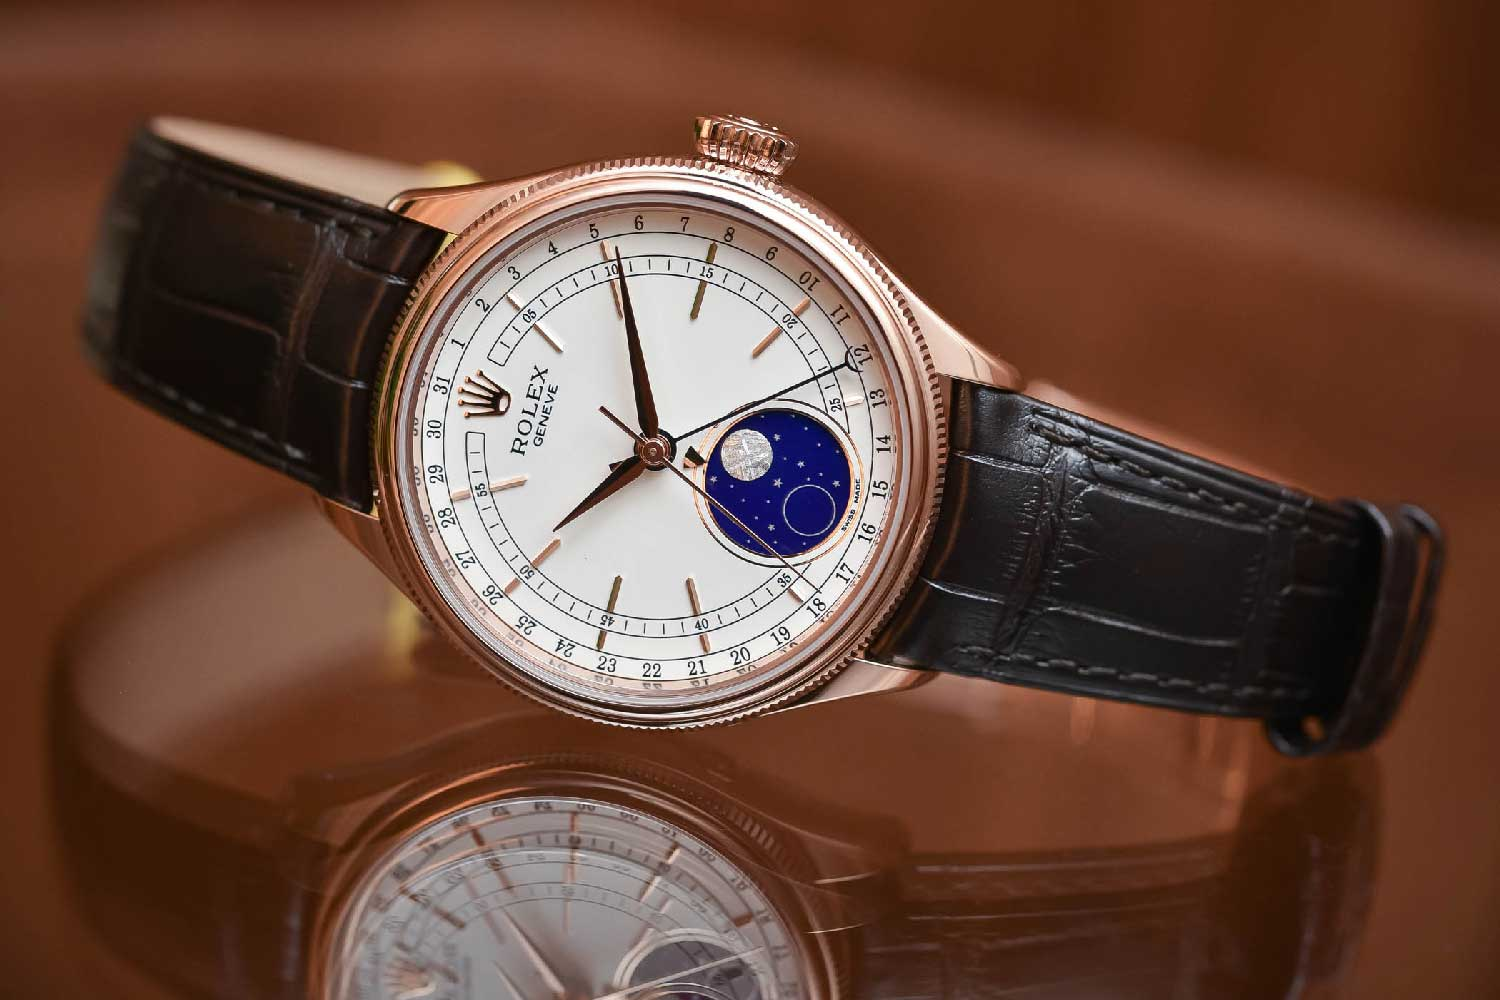 The Rolex Cellini Moonphase Ref. 50535 from 2017